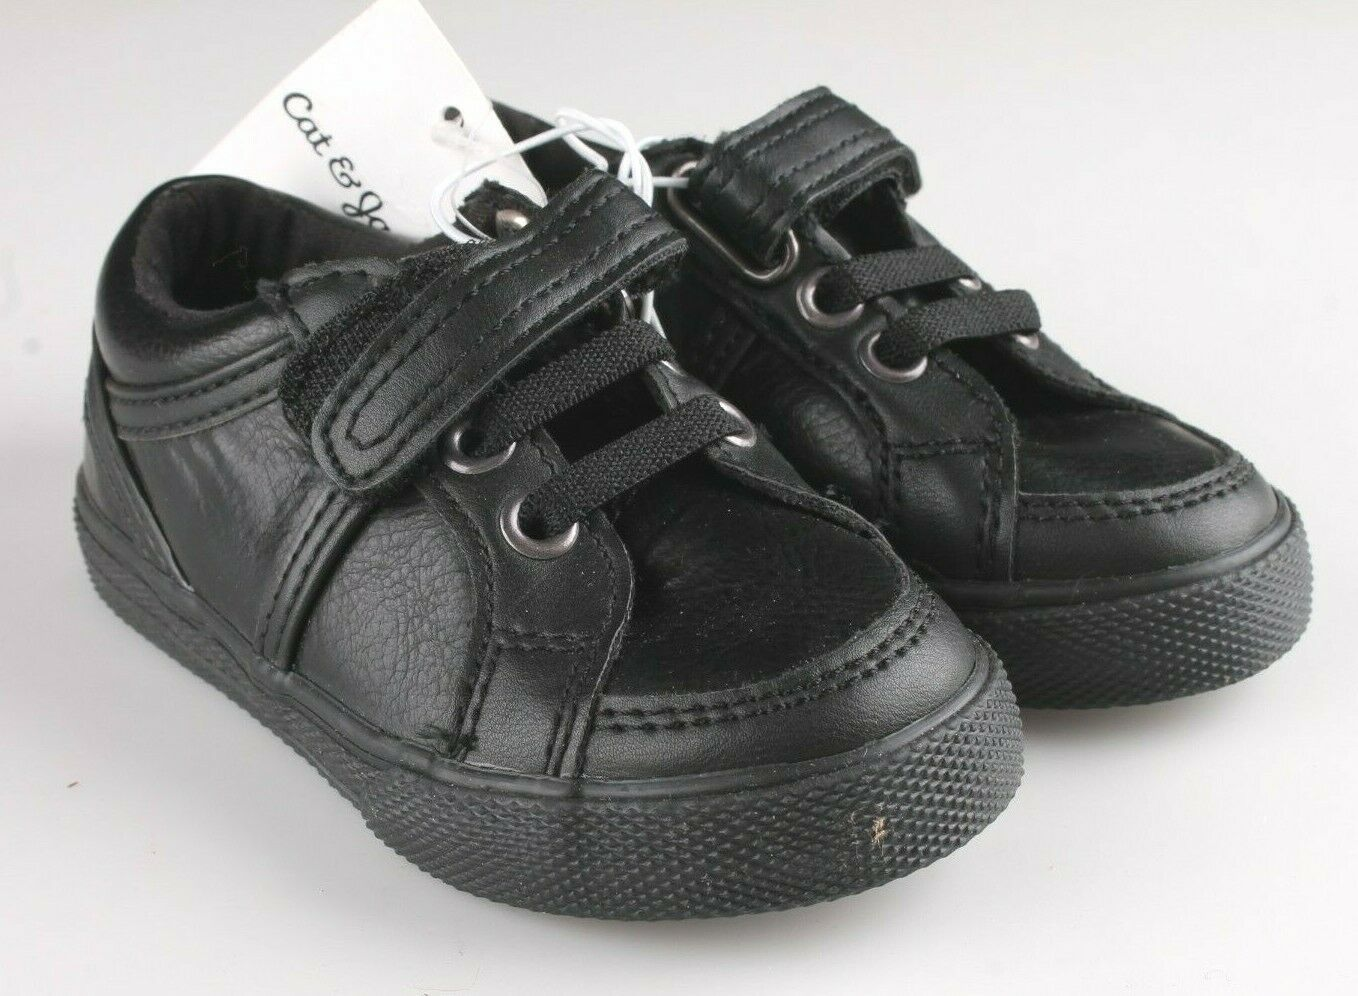 Cat & Jack Toddler Boys' Huxley Black Faux Leather Sneaker Shoes 6 US NWT